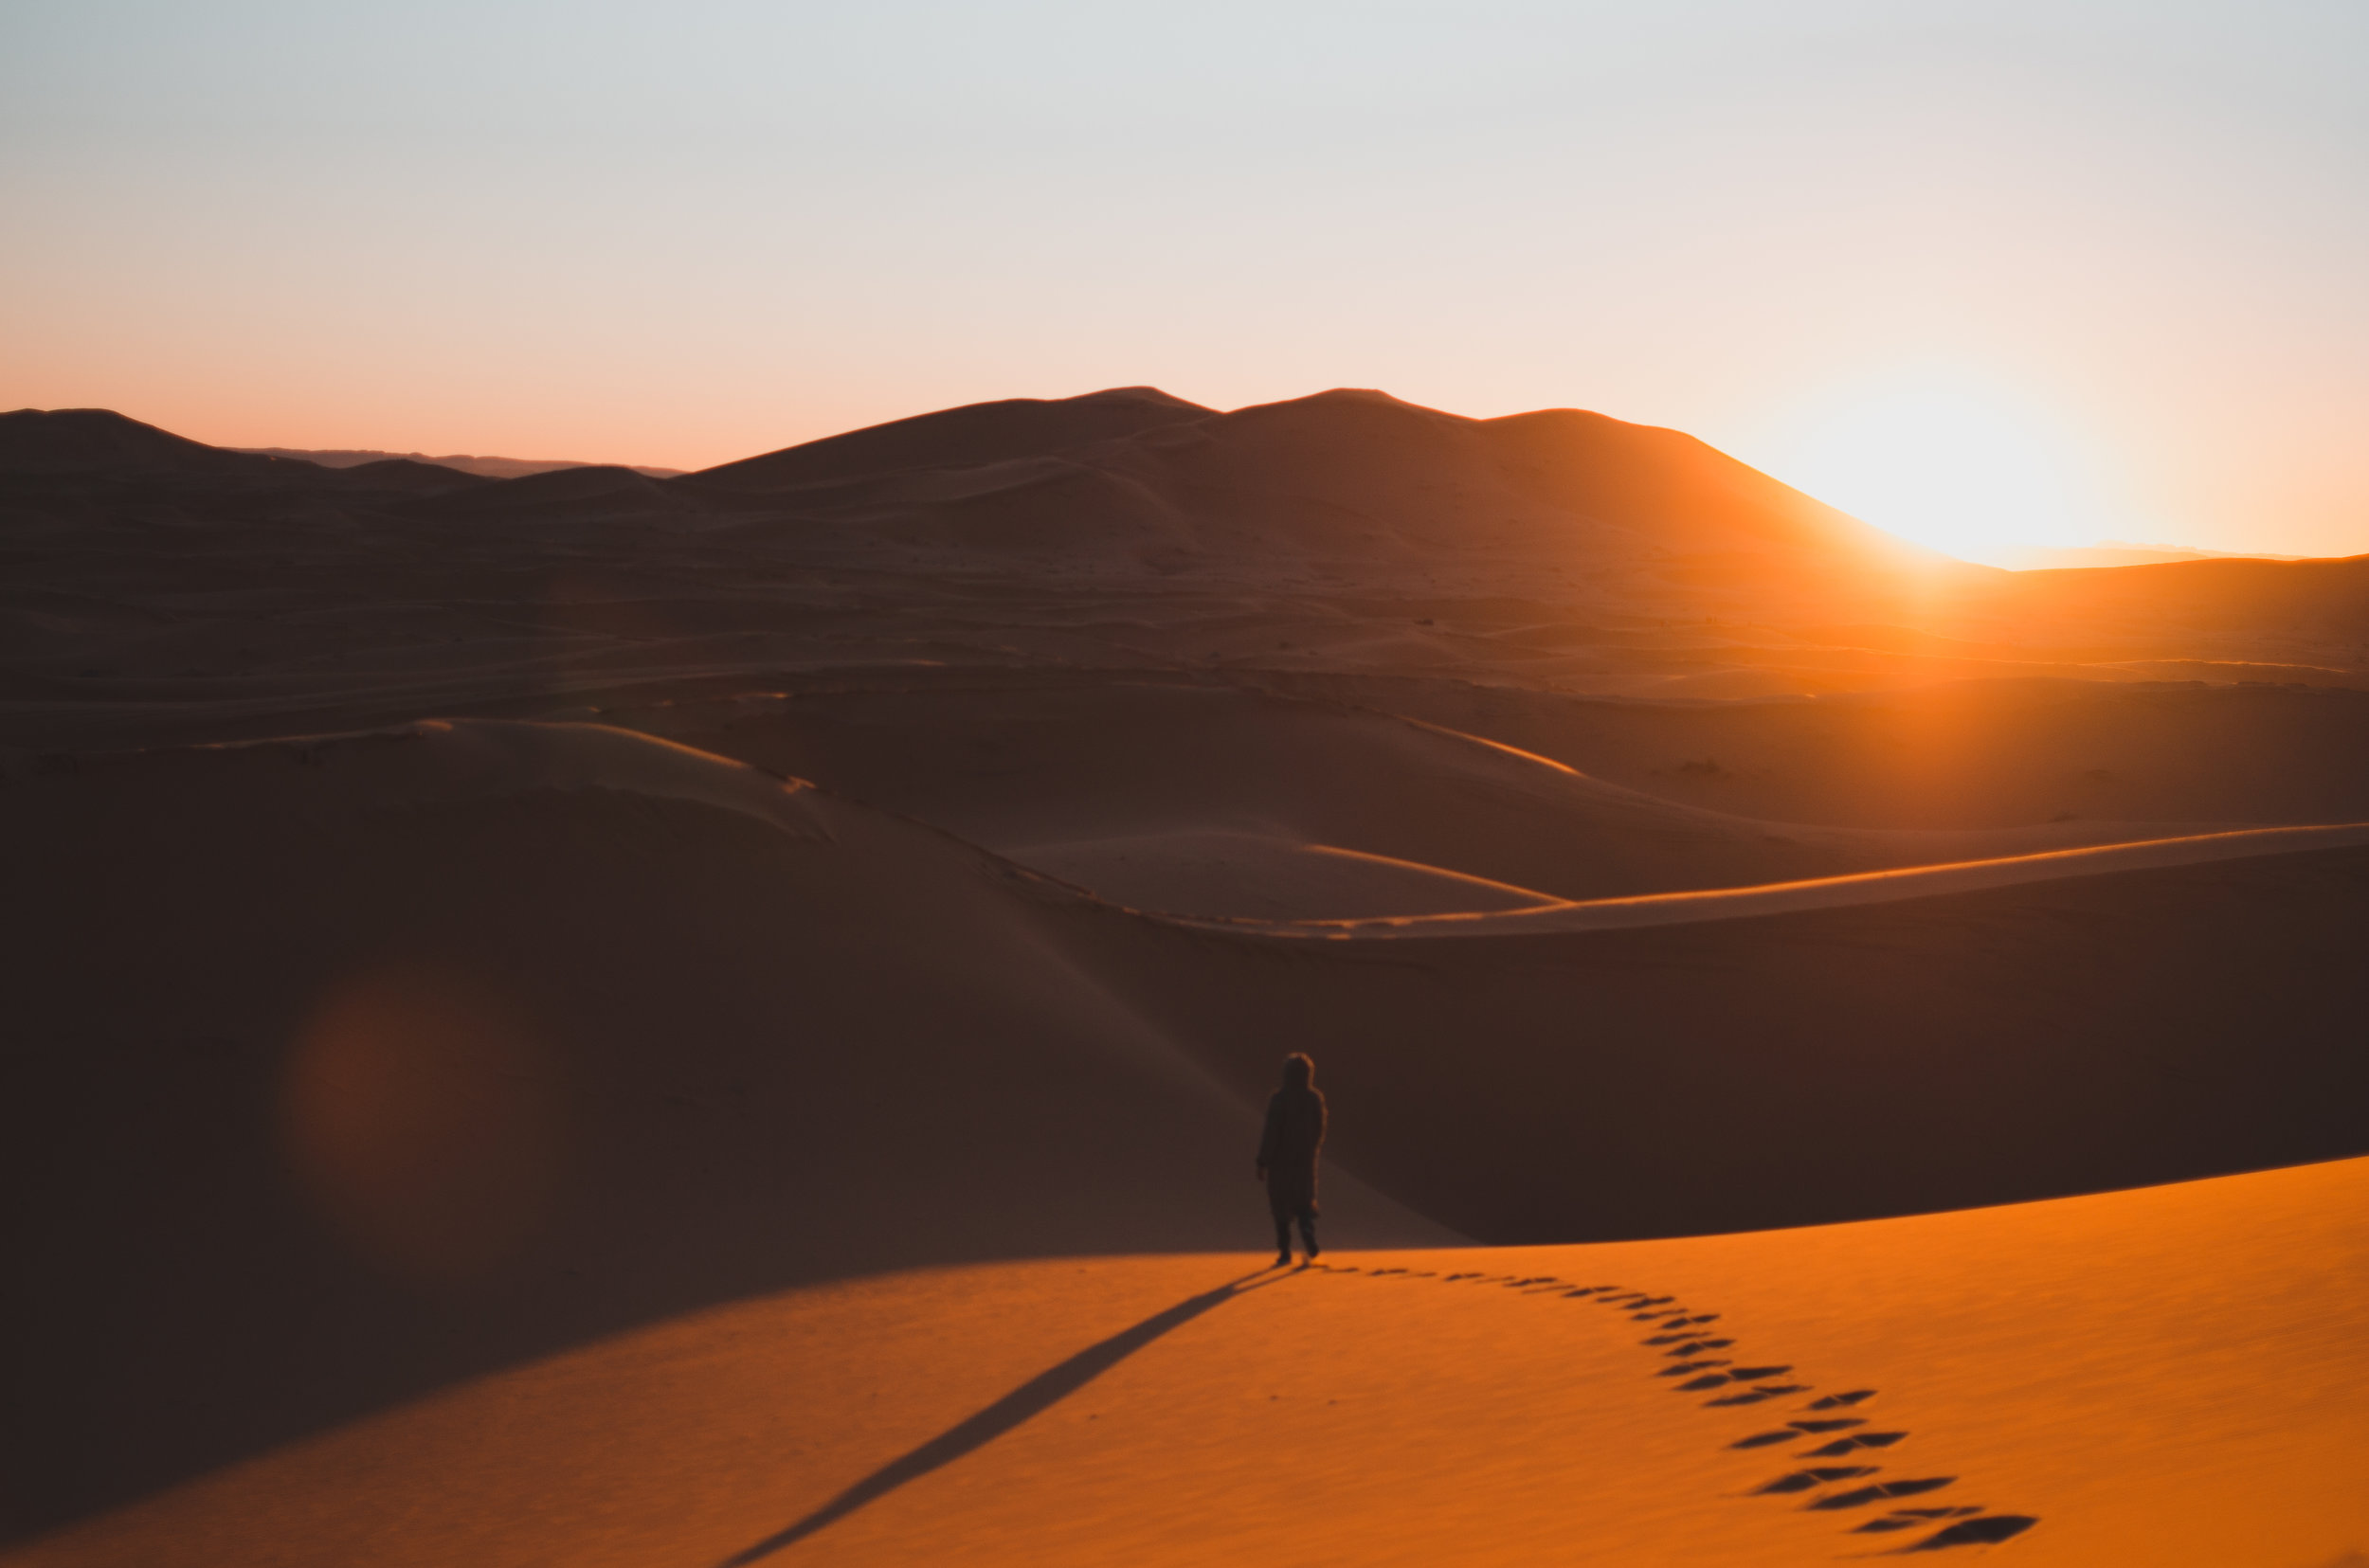 Our Moroccan guide watches the sun go down in the Sahara Desert